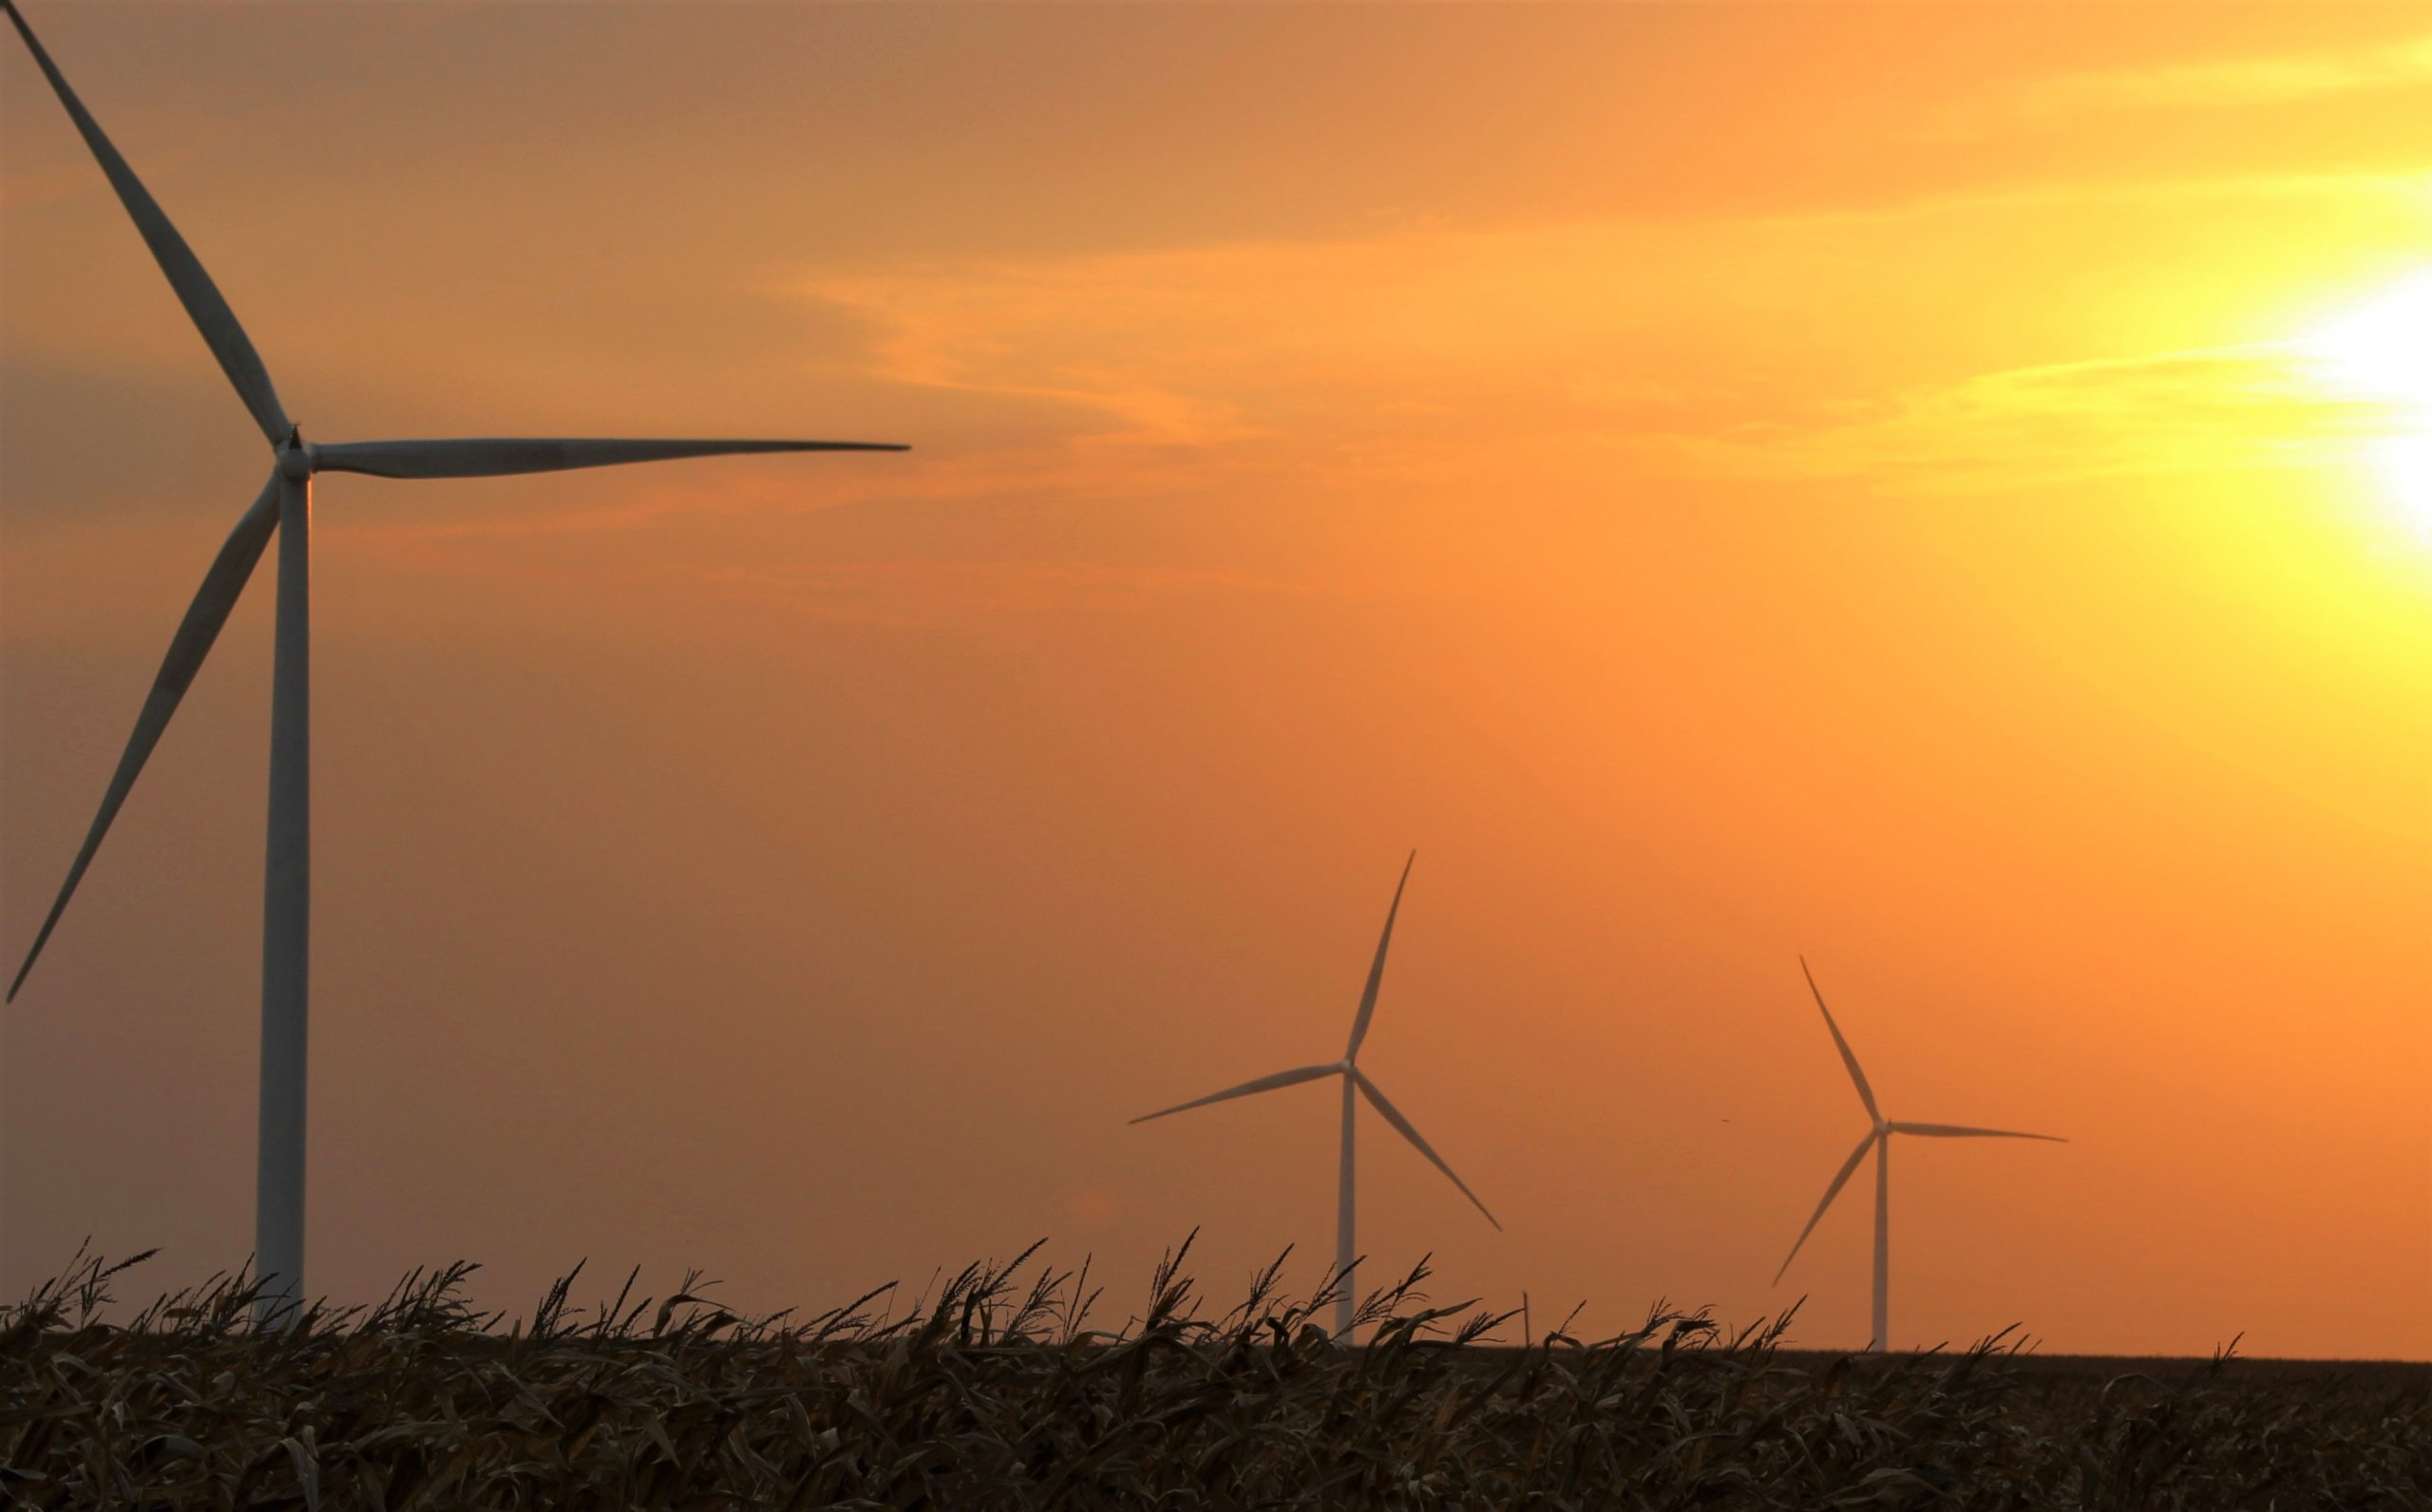 Iowa is one of the nation's top producers of wind energy. (Photo by Perry Beeman/Iowa Capital Dispatch)